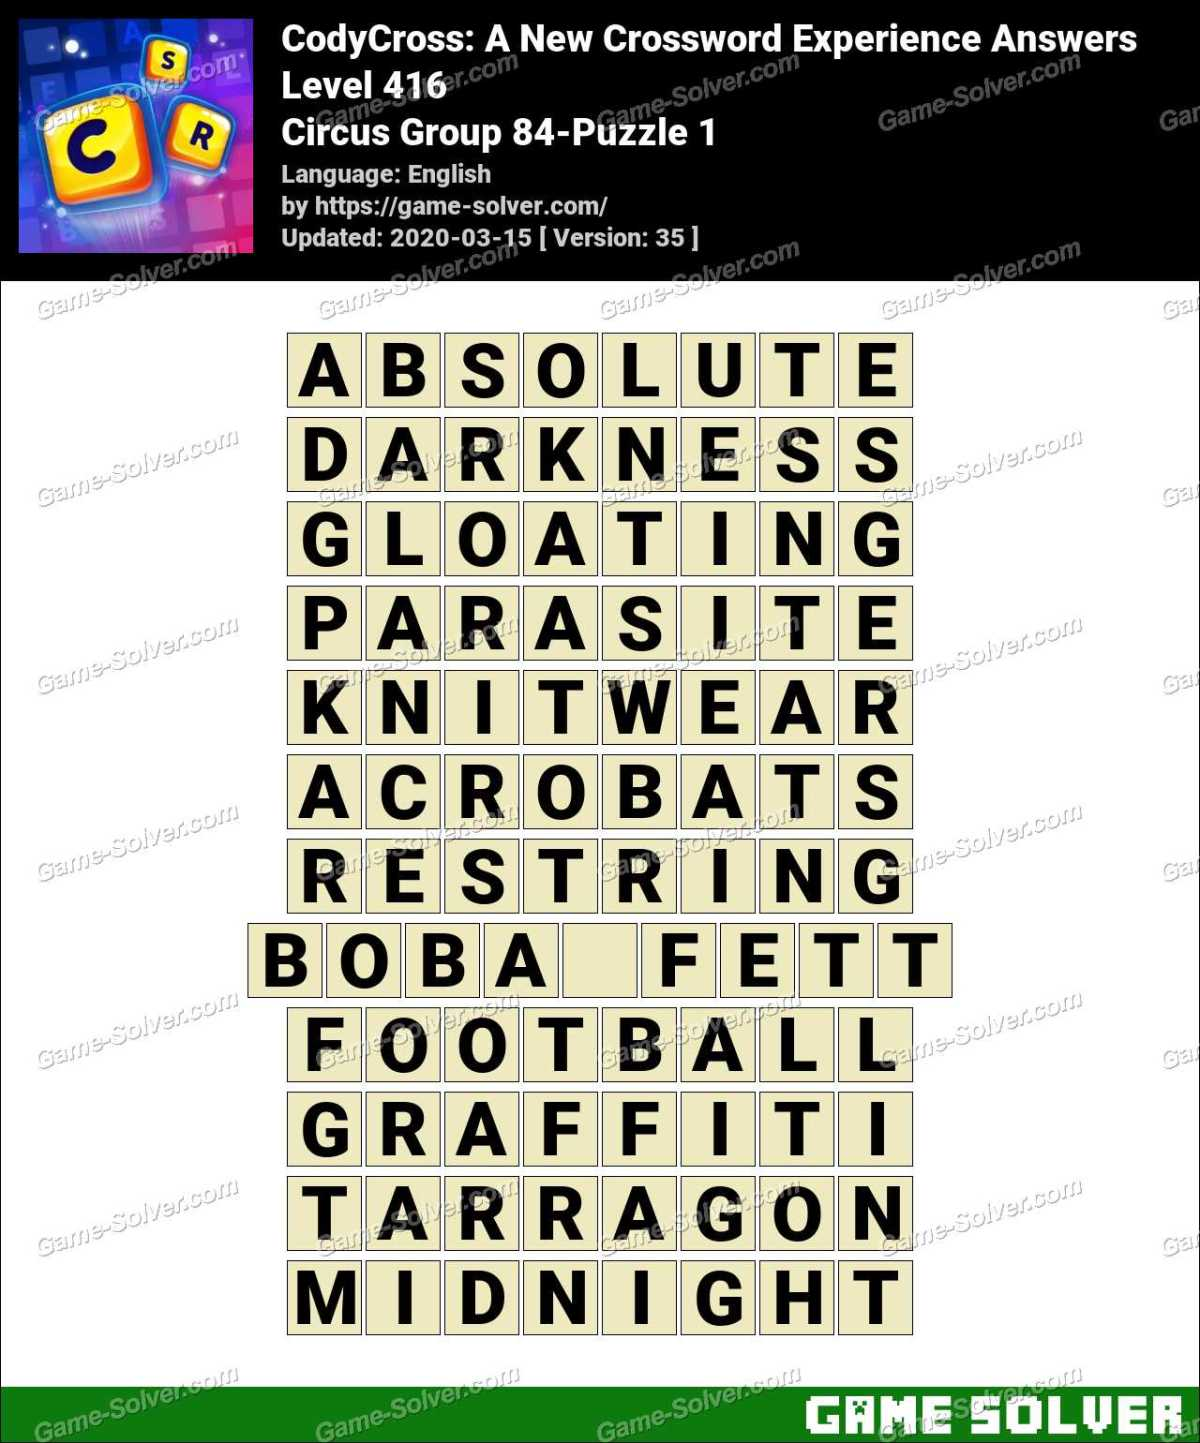 CodyCross Circus Group 84-Puzzle 1 Answers